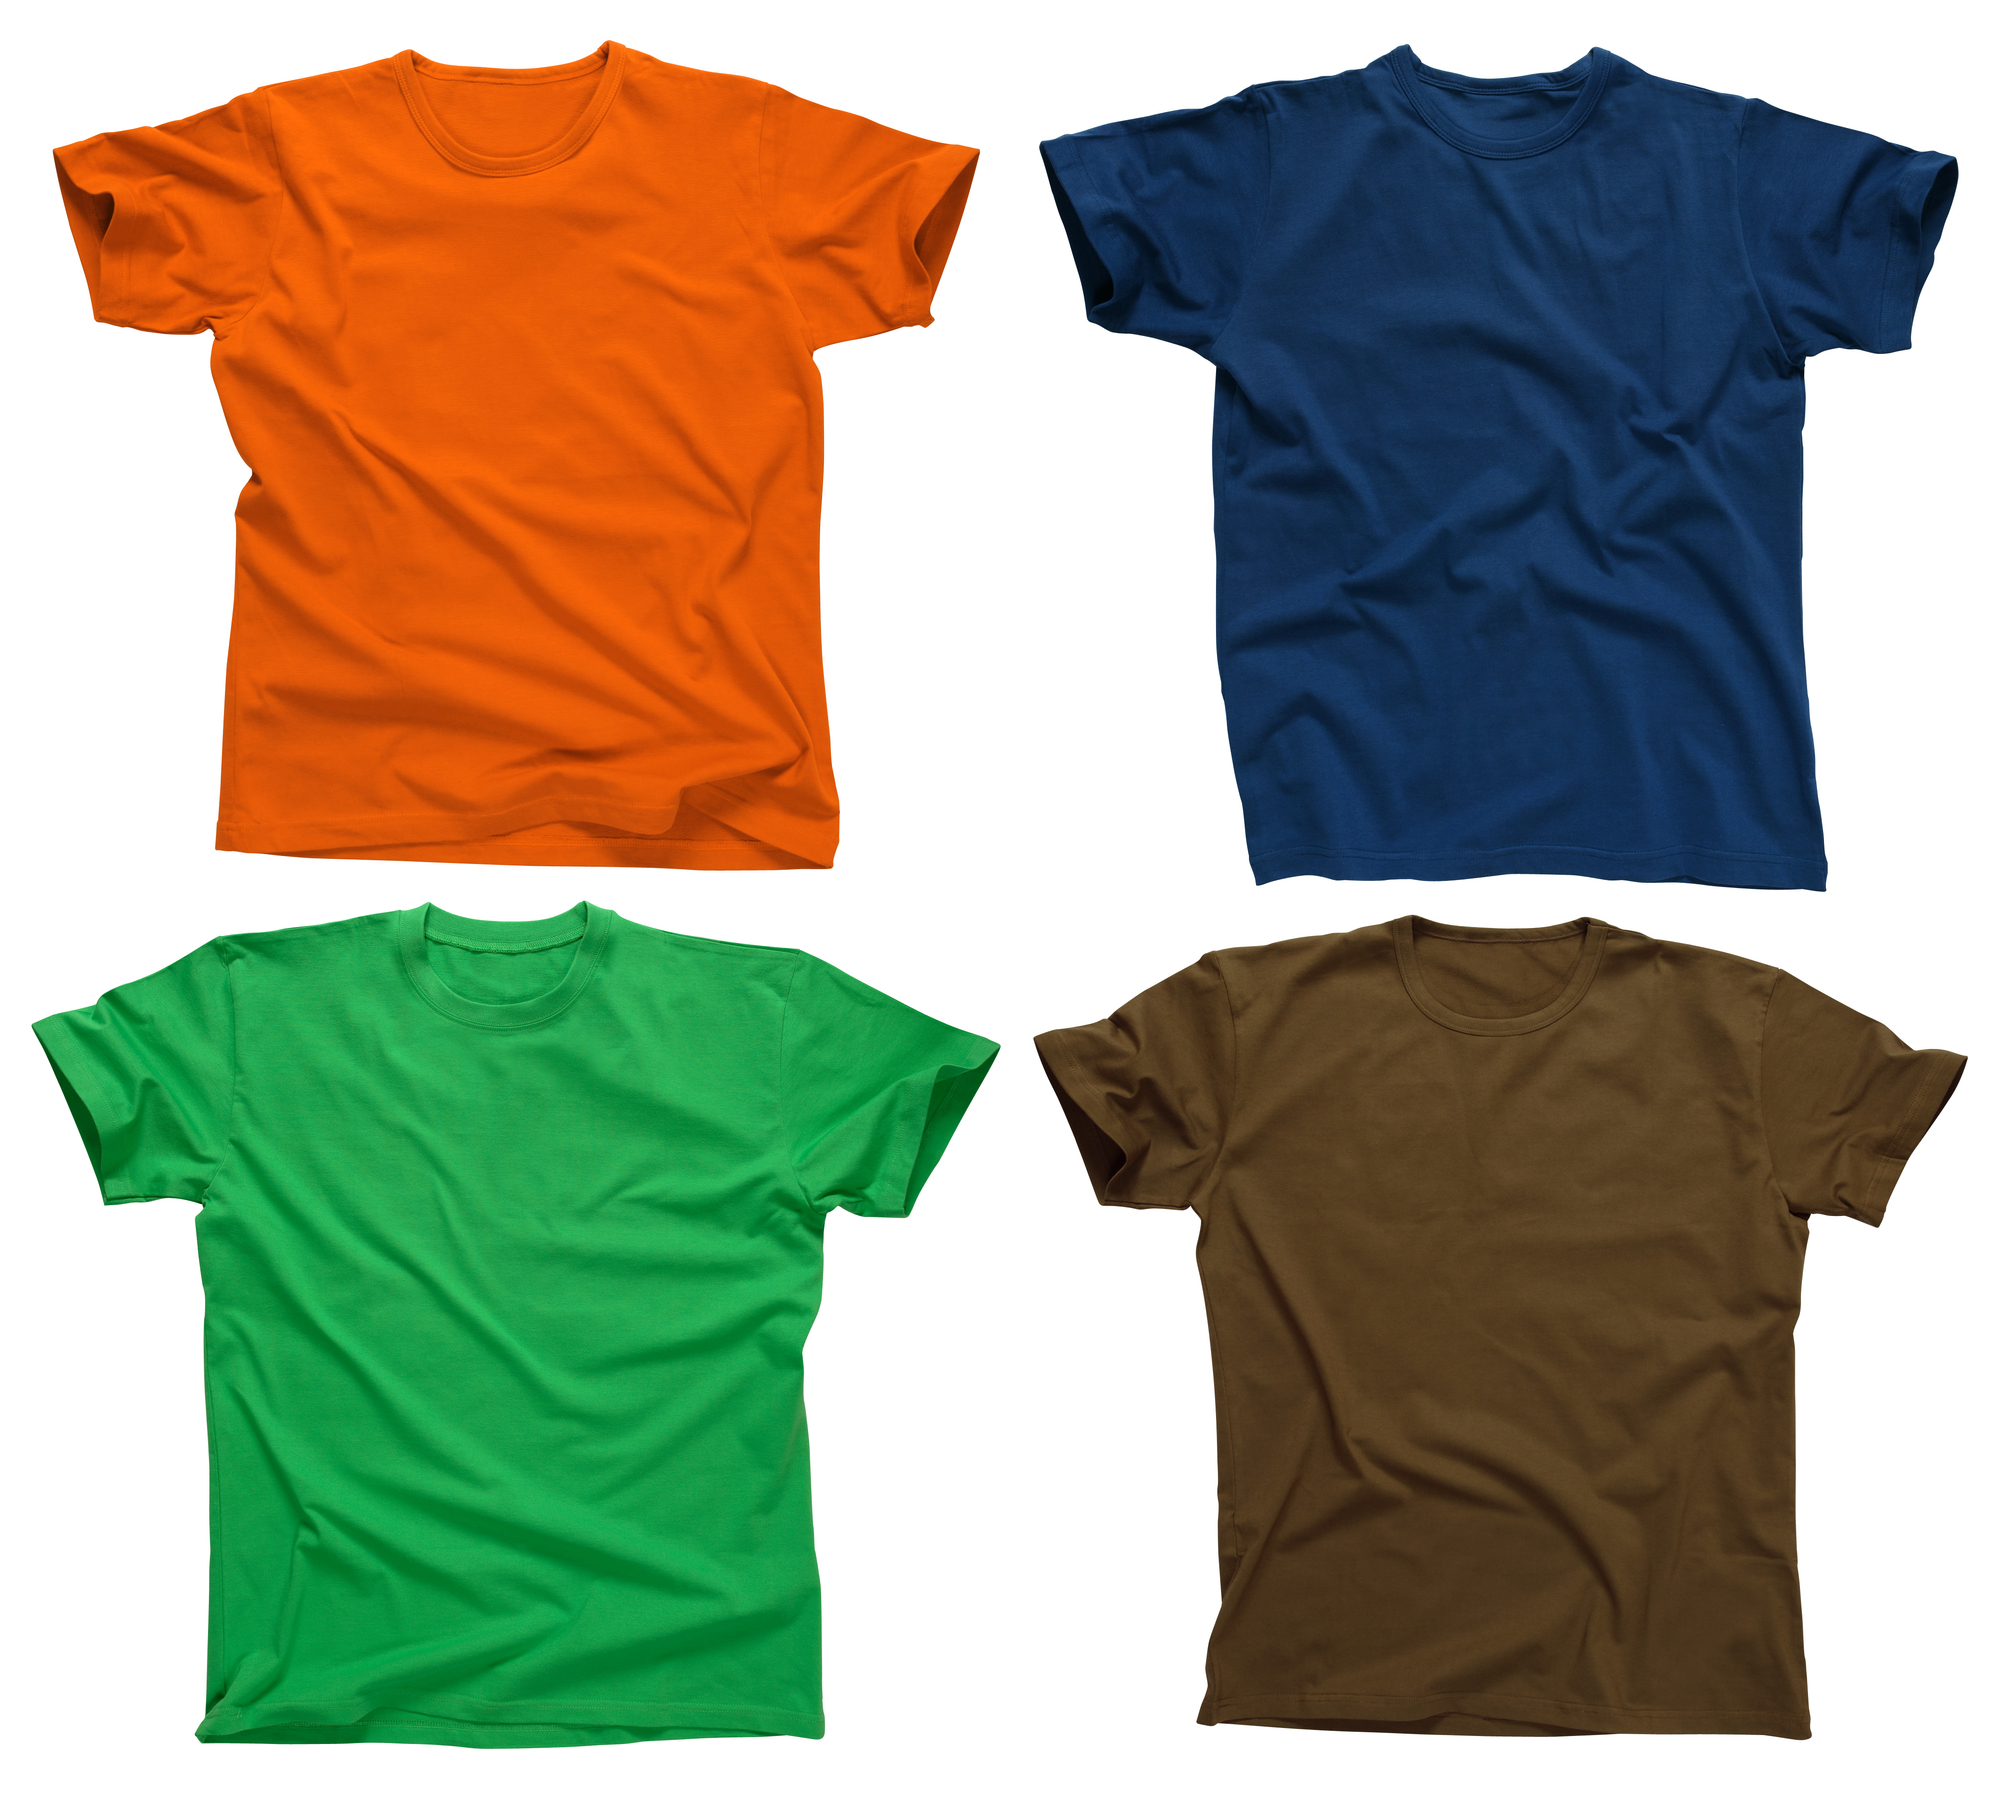 Stand Out Designs Shirts : Make your company stand out with personalized t shirts for